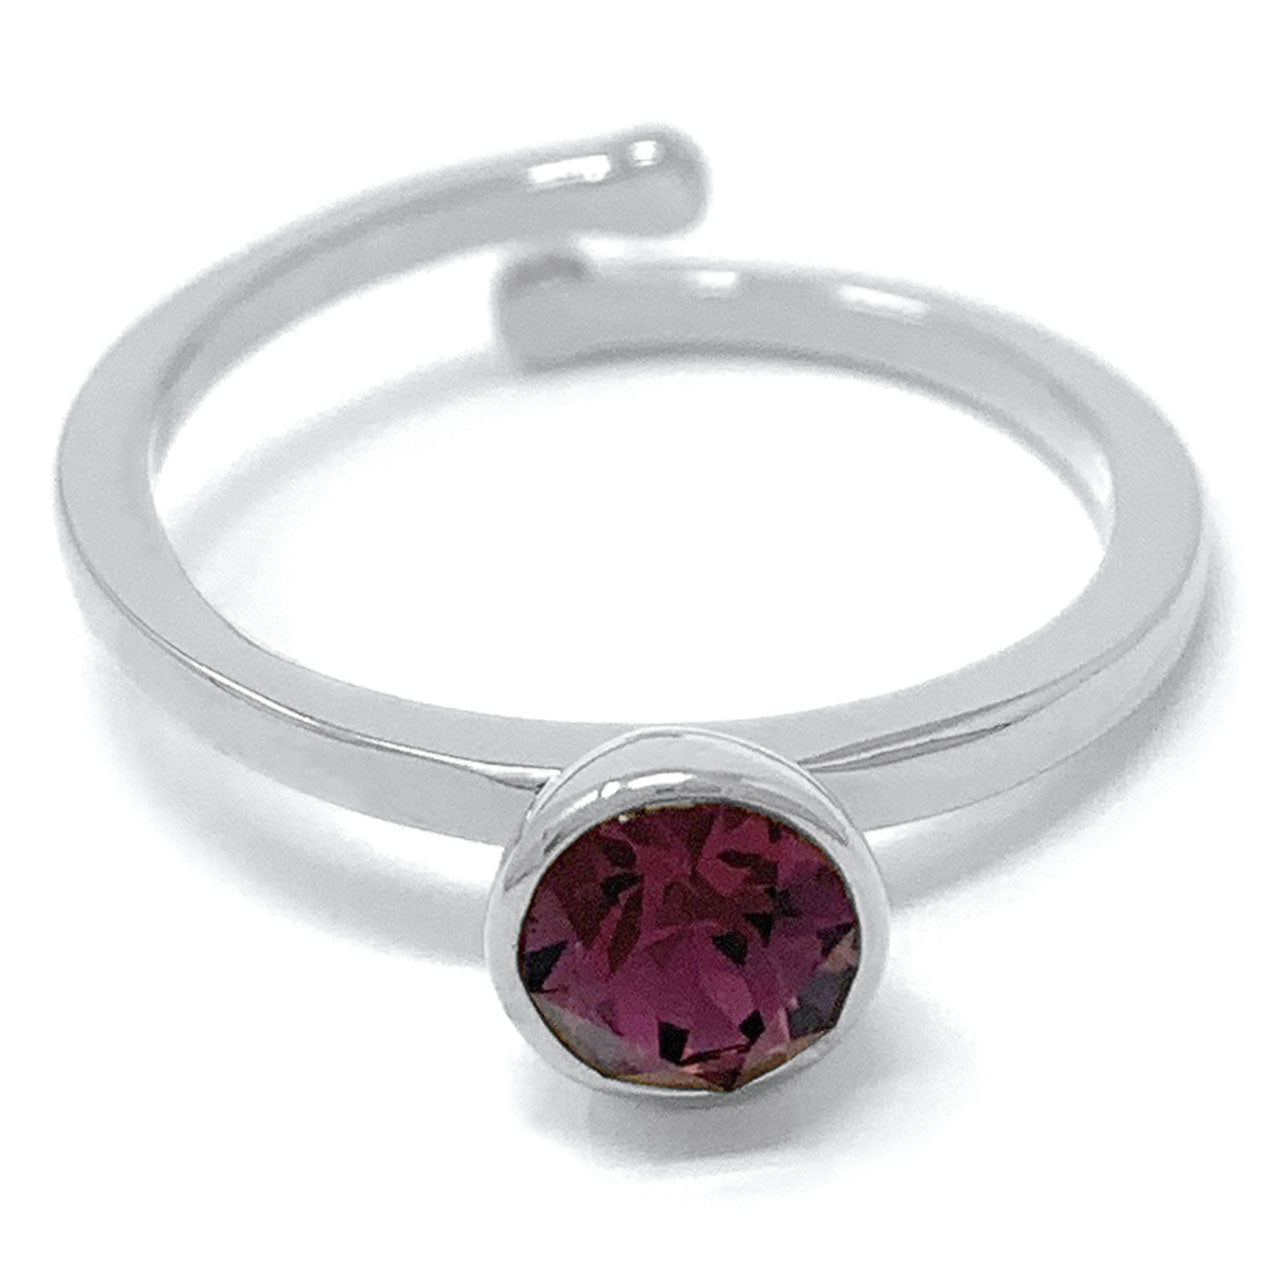 Harley Adjustable Ring with Purple Amethyst Round Crystals from Swarovski Silver Toned Rhodium Plated - Ed Heart